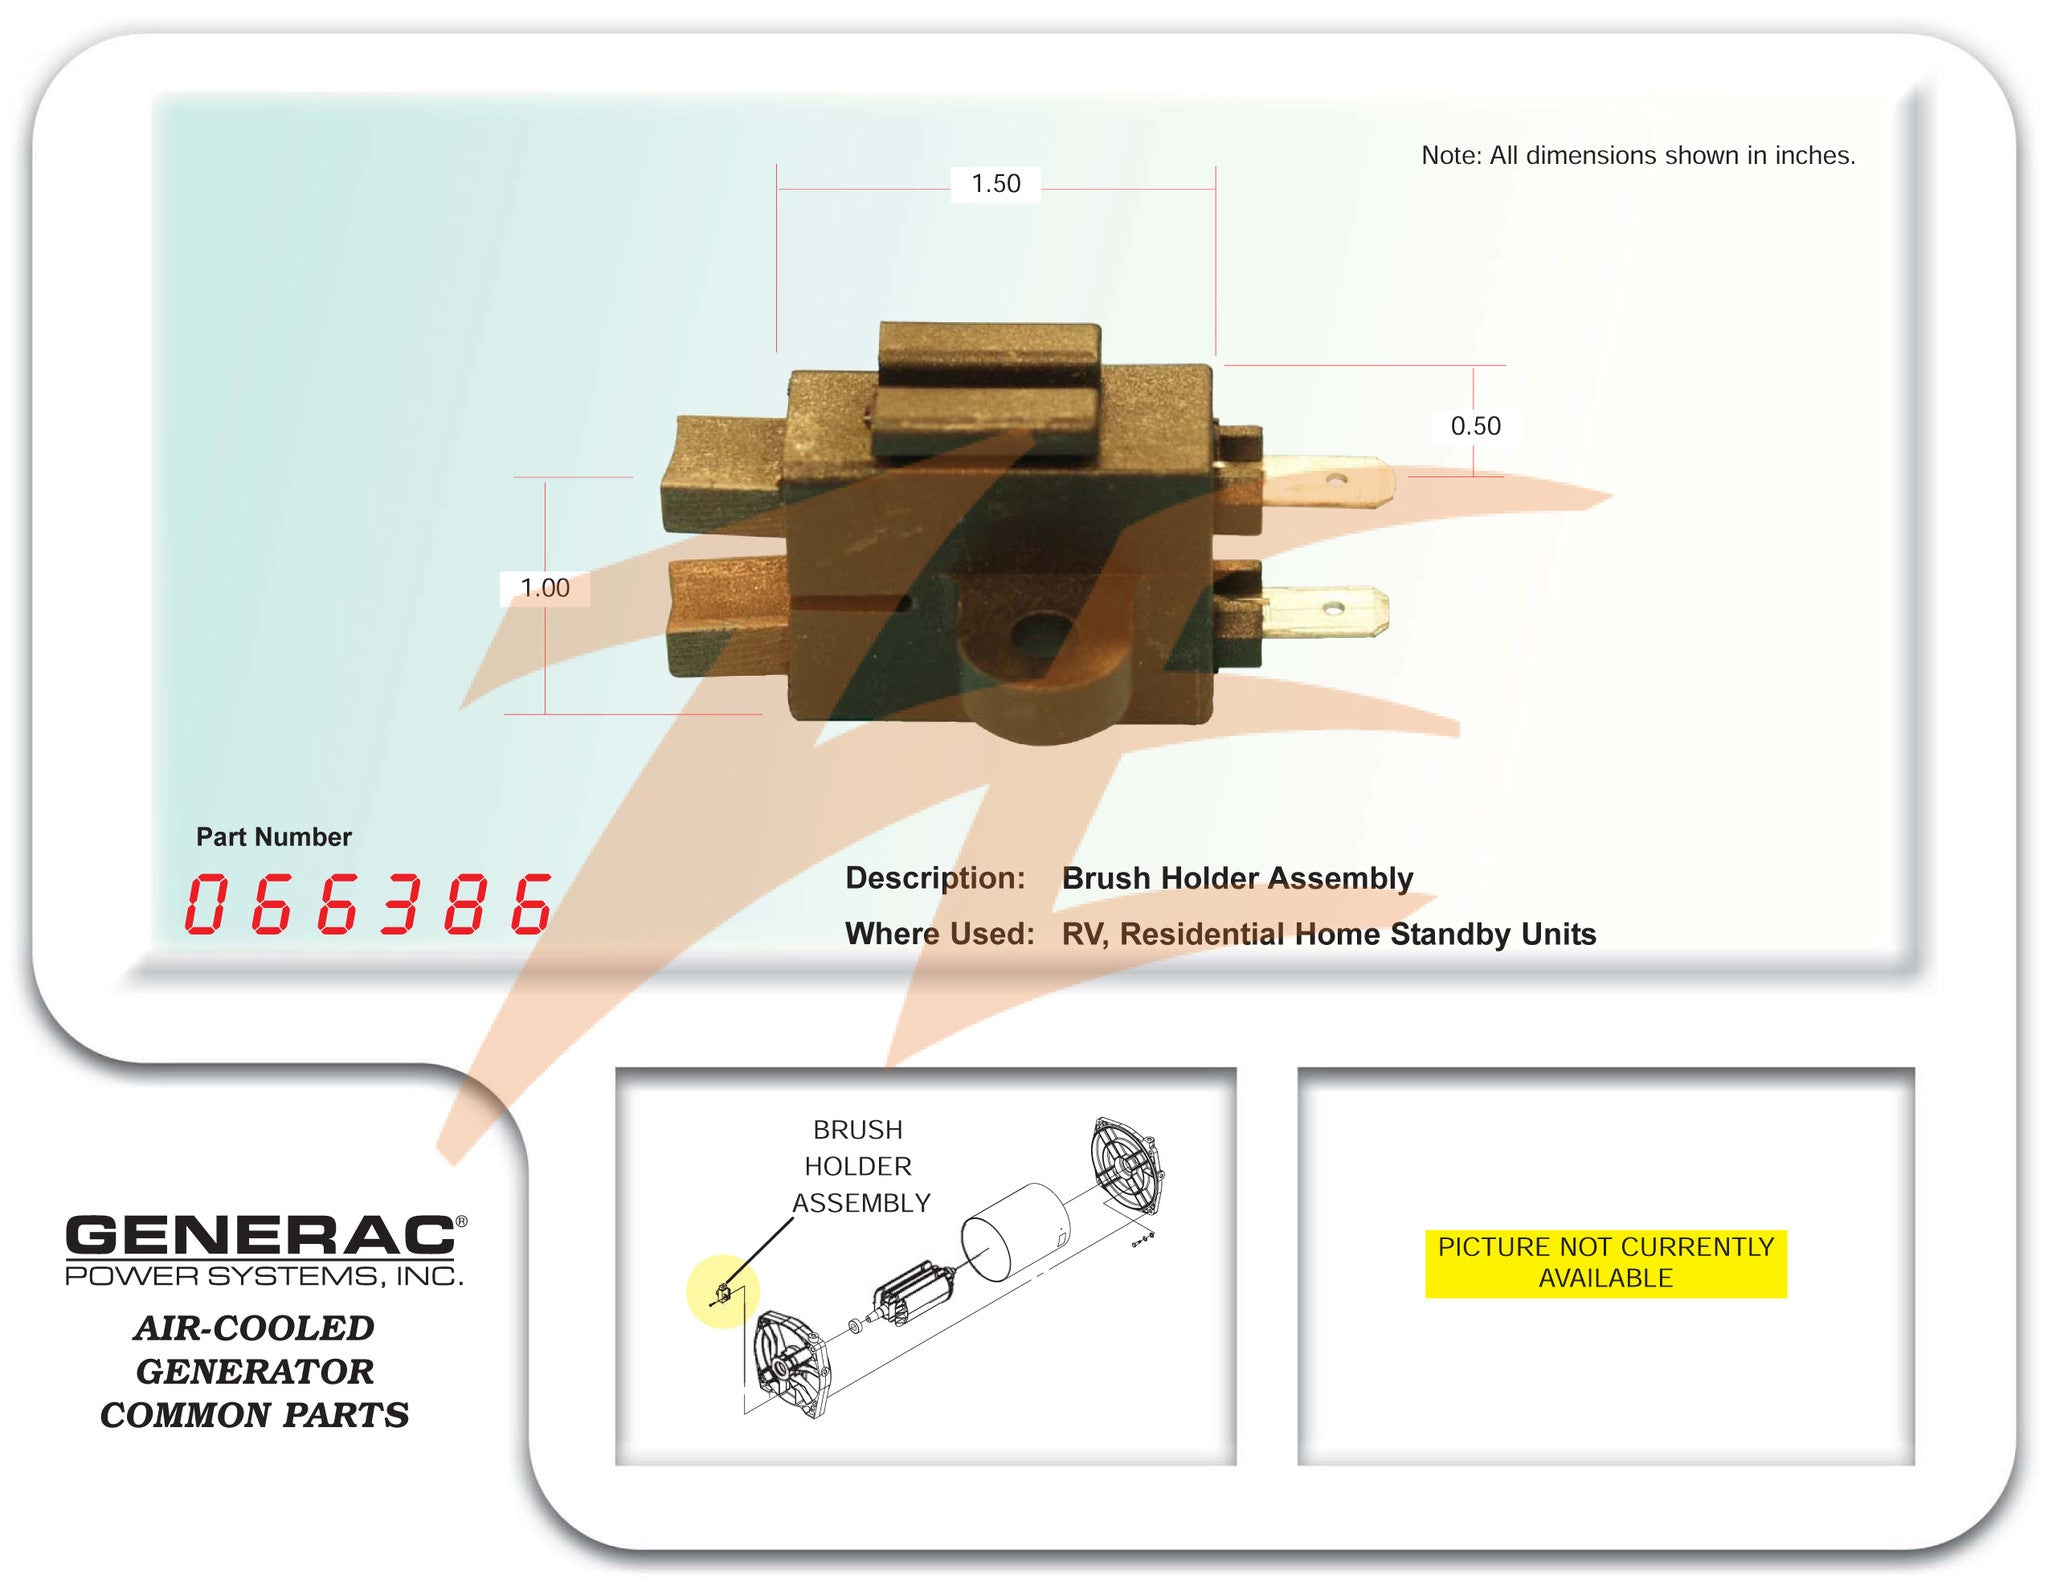 Generac 30kw 3 Phase Generator Wiring Diagram Product Schematics 066386 0663860srv Brush Assembly Ziller Electric Rh Zillerelectric Com Standby Layout